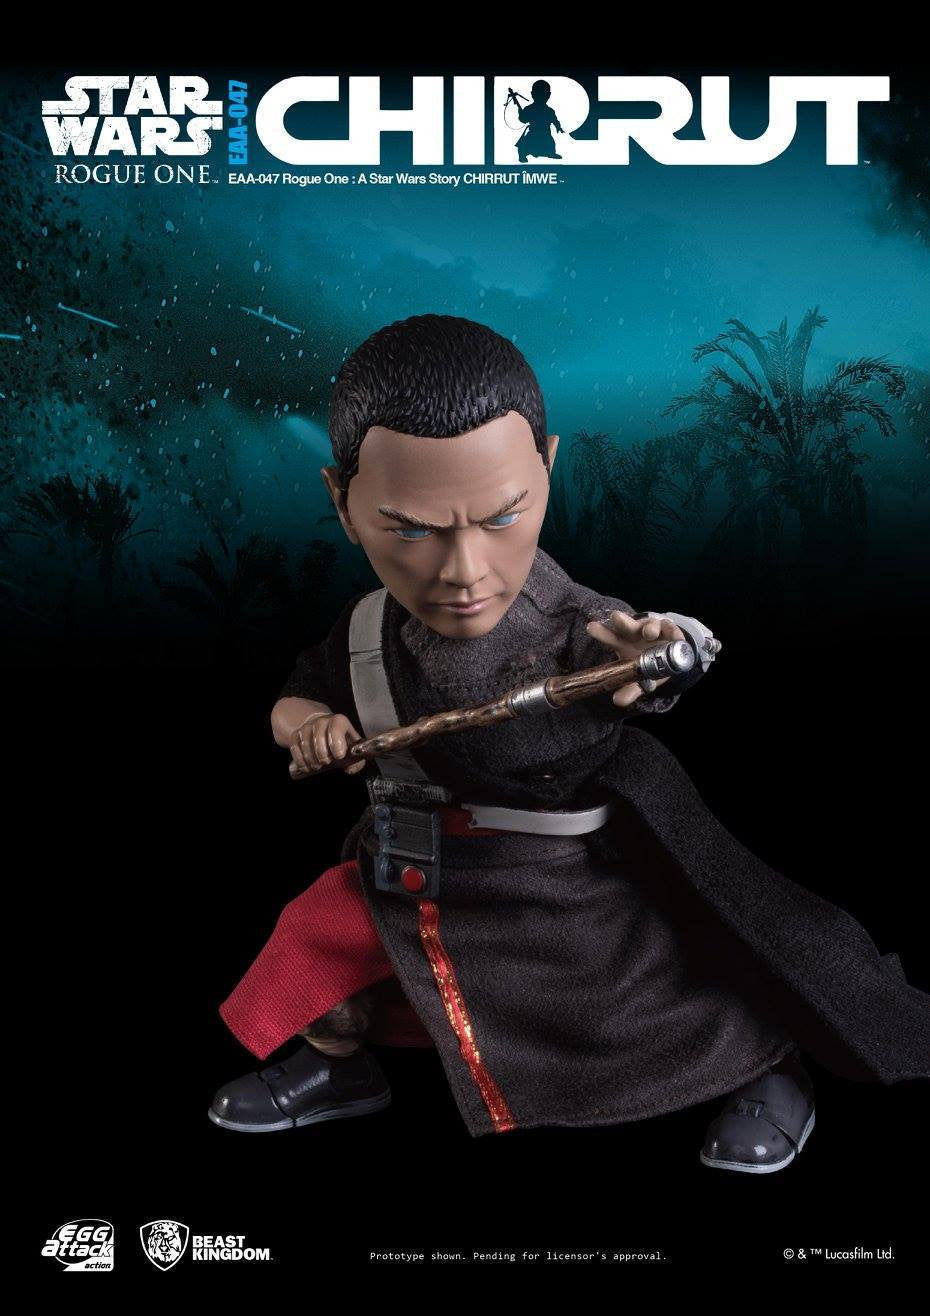 Egg Attack Action - EAA-047 - Rogue One: A Star Wars Story - Chirrut Imwe - Marvelous Toys - 1